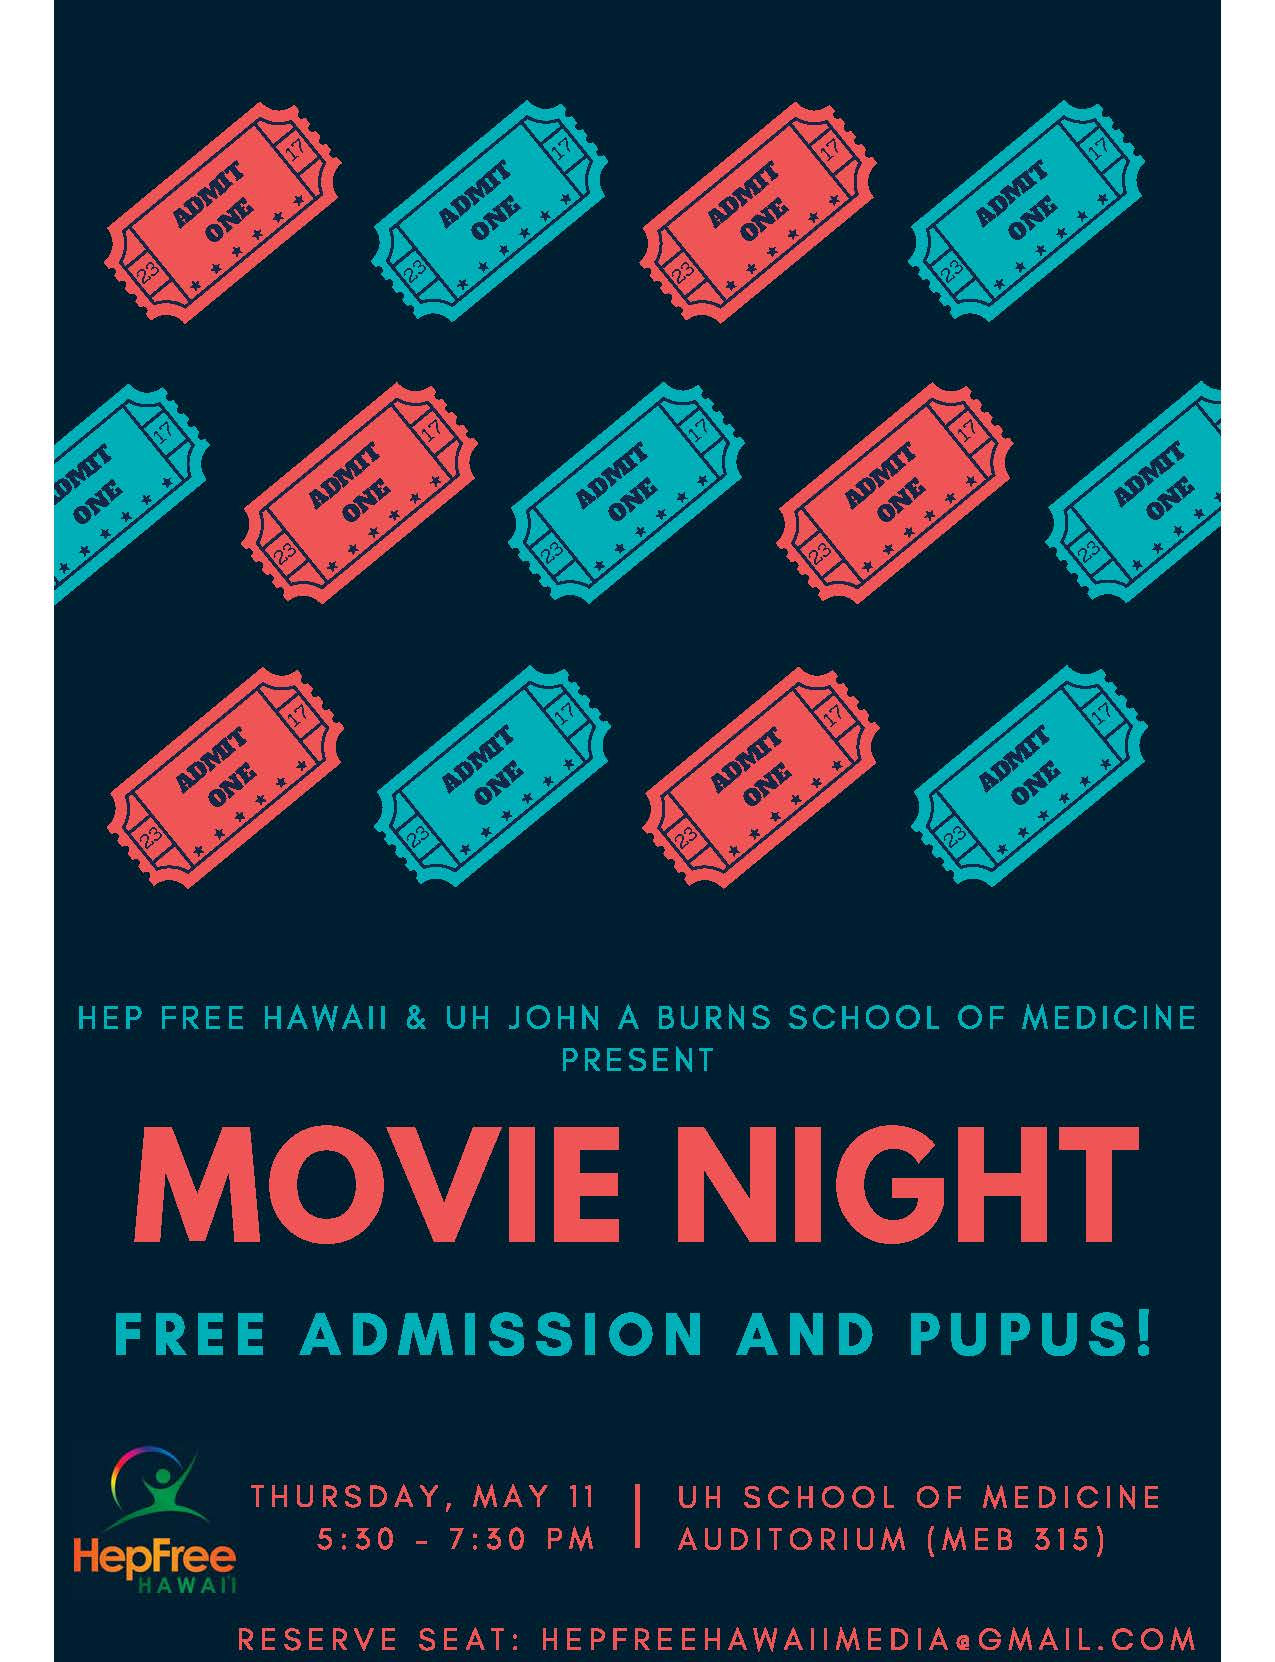 Handout-Hep B Movie Flyer (Front).jpg